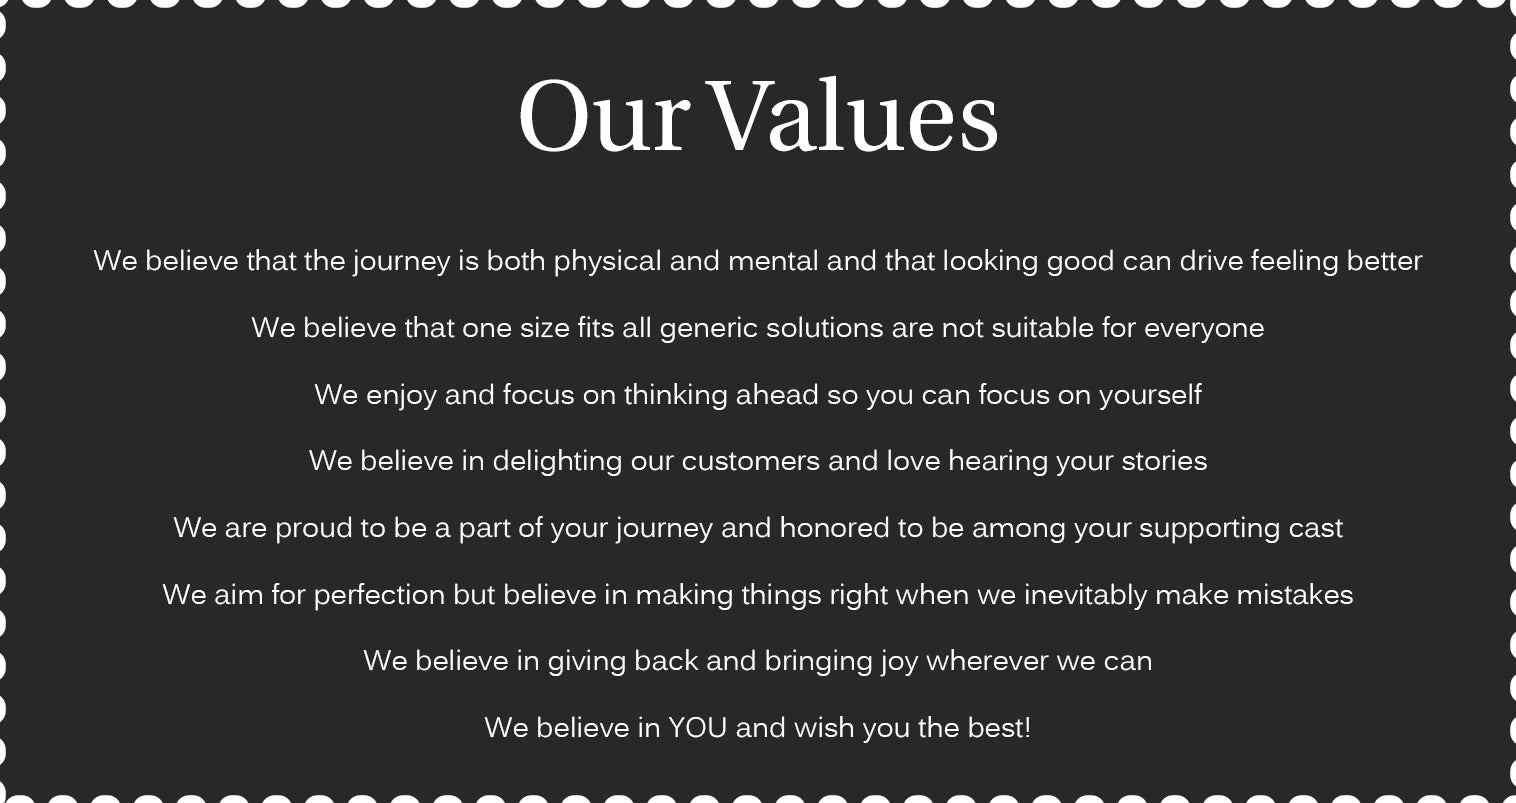 We believe that the journey is both physical and mental and that looking good can drive feeling better We believe that one size fits all generic solutions are not suitable for everyone We enjoy and focus on thinking ahead so you can focus on yourself We believe in delighting our customers and love hearing your stories We are proud to be a part of your journey and honored to be among your supporting cast We aim for perfection but believe in making things right when we inevitably make mistakes We believe in giving back and bringing joy wherever we can We believe in YOU and wish you the best!